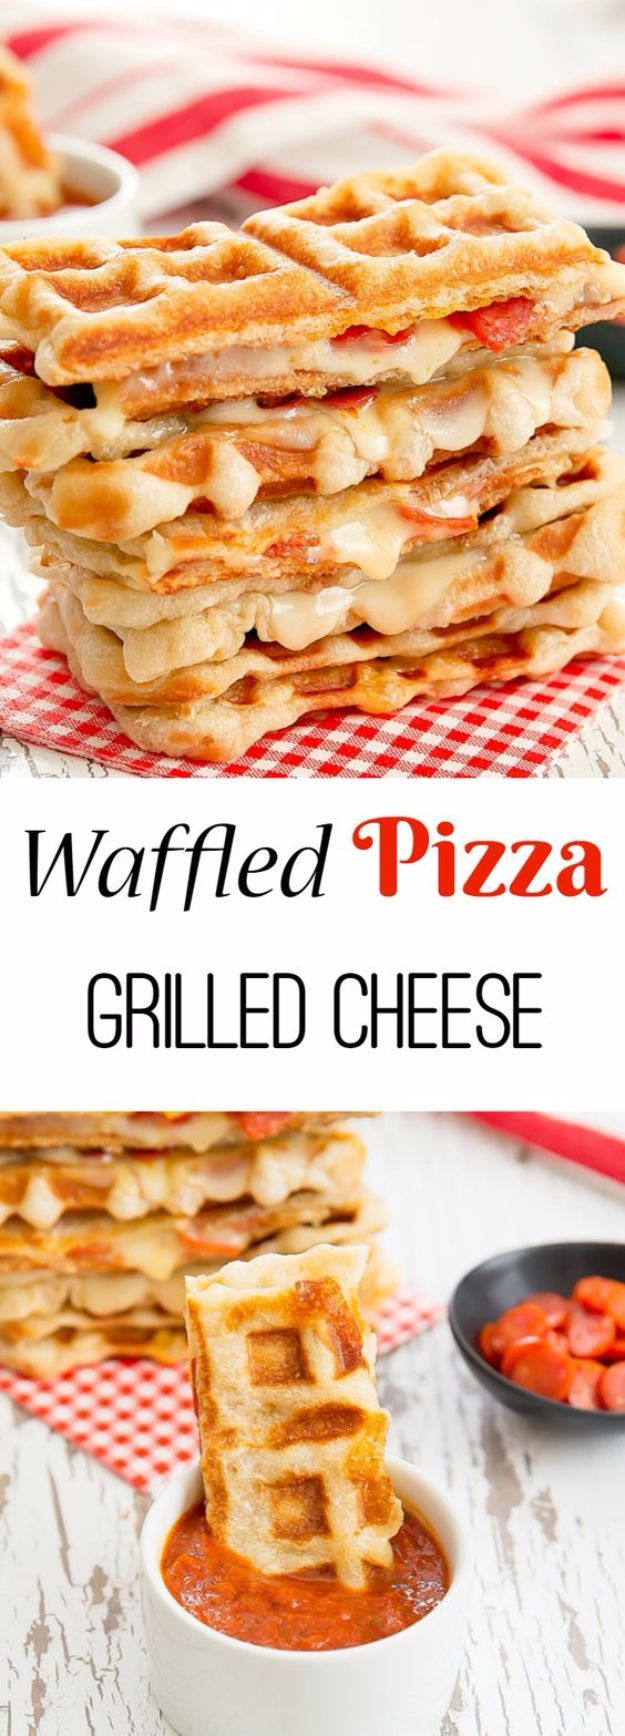 Waffle Iron Hacks and Easy Recipes for Waffle Irons - Waffled Pepperoni Pizza Grilled Cheese - Quick Ways to Make Healthy Meals in a Waffle Maker - Breakfast, Dinner, Lunch, Dessert and Snack Ideas - Homemade Pizza, Cinnamon Rolls, Egg, Low Carb, Sandwich (easy healthy meals for men)